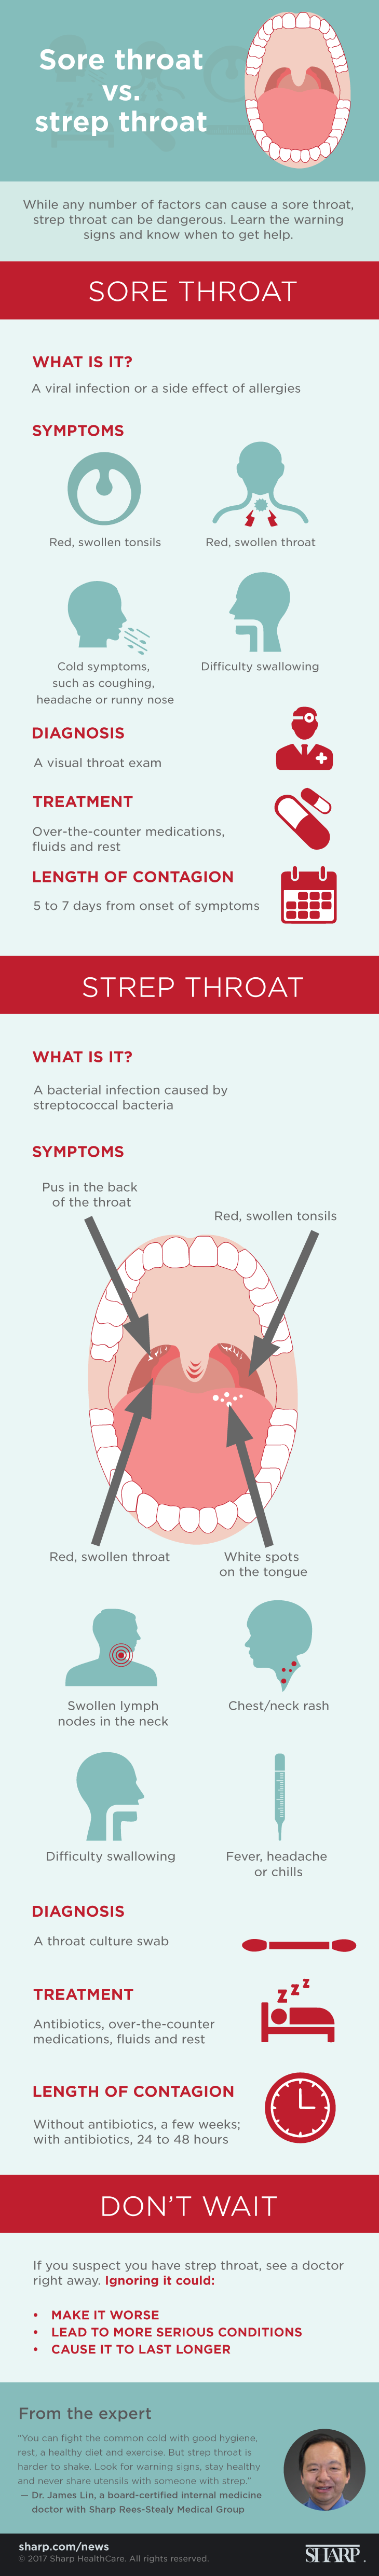 "While any number of factors can cause a sore throat, strep throat can be dangerous. Learn the warning signs and know when to get help. A sore throat is a viral infection or a side effect of allergies. Symptoms of sore throat include red, swollen tonsils or throat; cold symptoms, such as coughing, headache or runny nose; and difficulty swallowing. A visual throat exam is needed to diagnose sore throat and the length of contagion is five to seven days from the onset of symptoms. Treatments may include over-the-counter medications, fluids and rest. Strep throat is a bacterial infection caused by streptococcal bacterial. Symptoms include pus in the back of the throat; red, swollen tonsils or throat; white spots on the tongue; swollen lymph nodes in the neck; check or neck rash; difficulty swallowing; and fever, headache or chills. A throat culture swab is used to diagnose strep throat. Treatment may include antibiotics, over-the-counter medications, fluids and rest. Without antibiotics, a person with strep throat is contagious a few weeks. With antibiotics, the length of contagion is 24 to 48 hours. If you suspect you have strep throat, see a doctor right away. Ignoring it could make it worse, lead to more serious conditions and cause it to last longer. ""You can fight the common cold with good hygiene, rest, a healthy diet and exercise,"" says Dr. James Lin, a board-certified internal medicine doctor with Sharp Rees-Stealy Medical Group. ""But strep throat is harder to shake. Look for warning signs, stay healthy and never share utensils with someone with strep."""